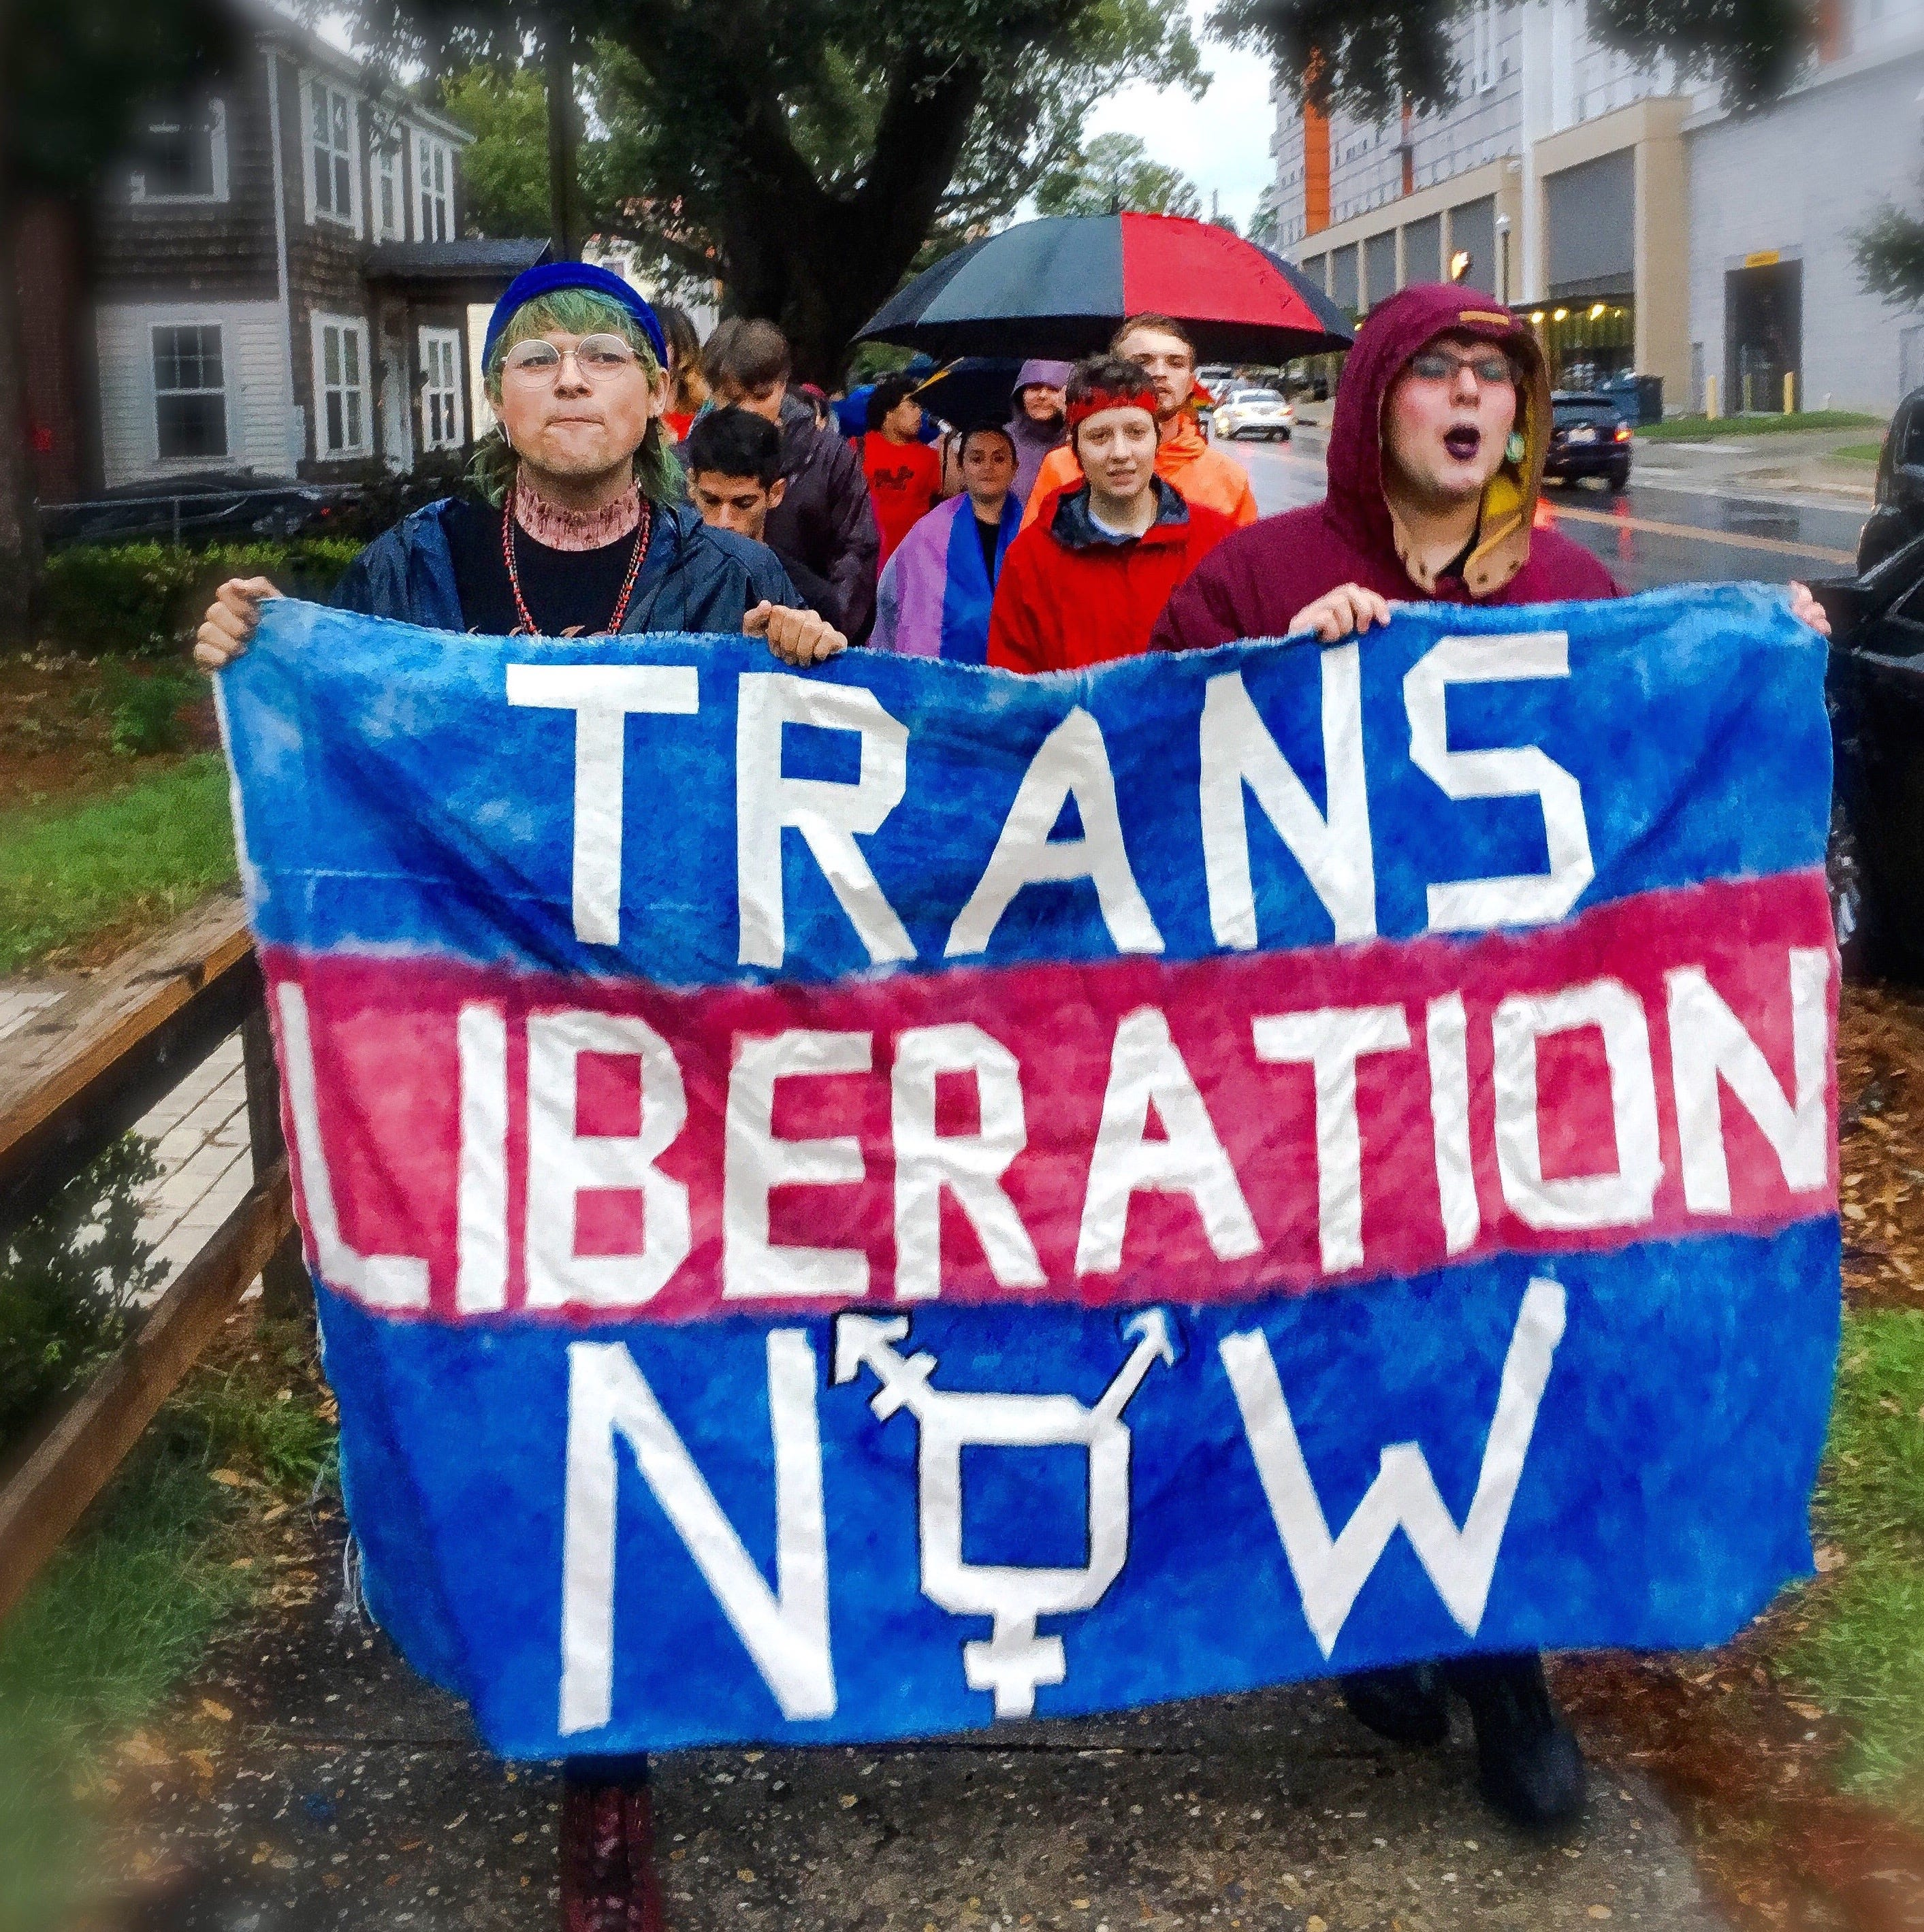 Student and community activists march for transgender liberation